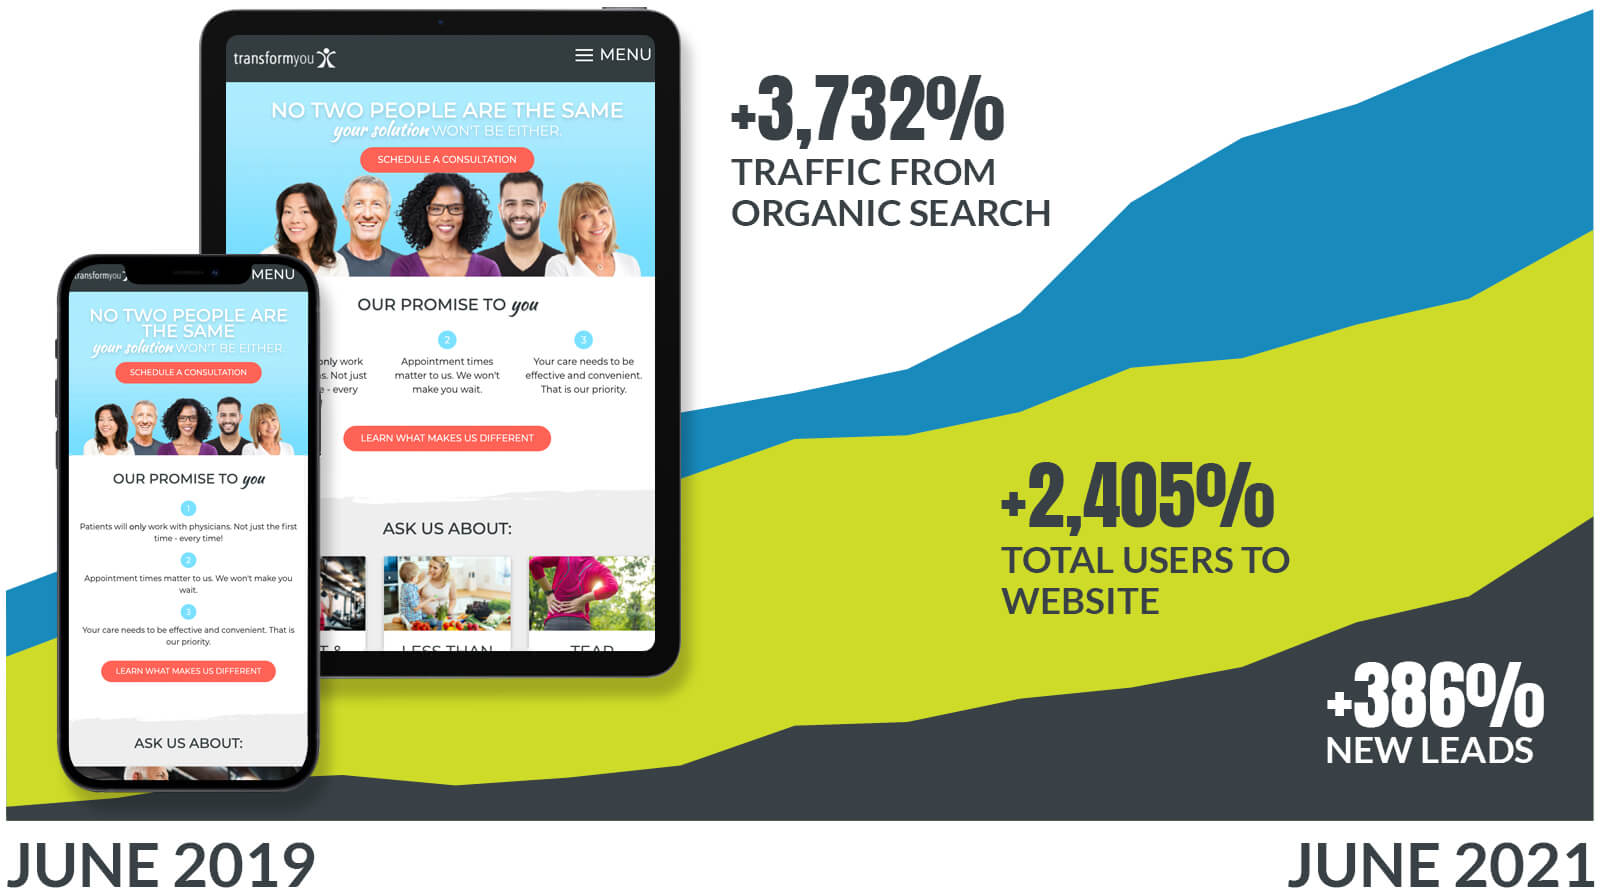 Transform You Traffic and Lead Increase Data